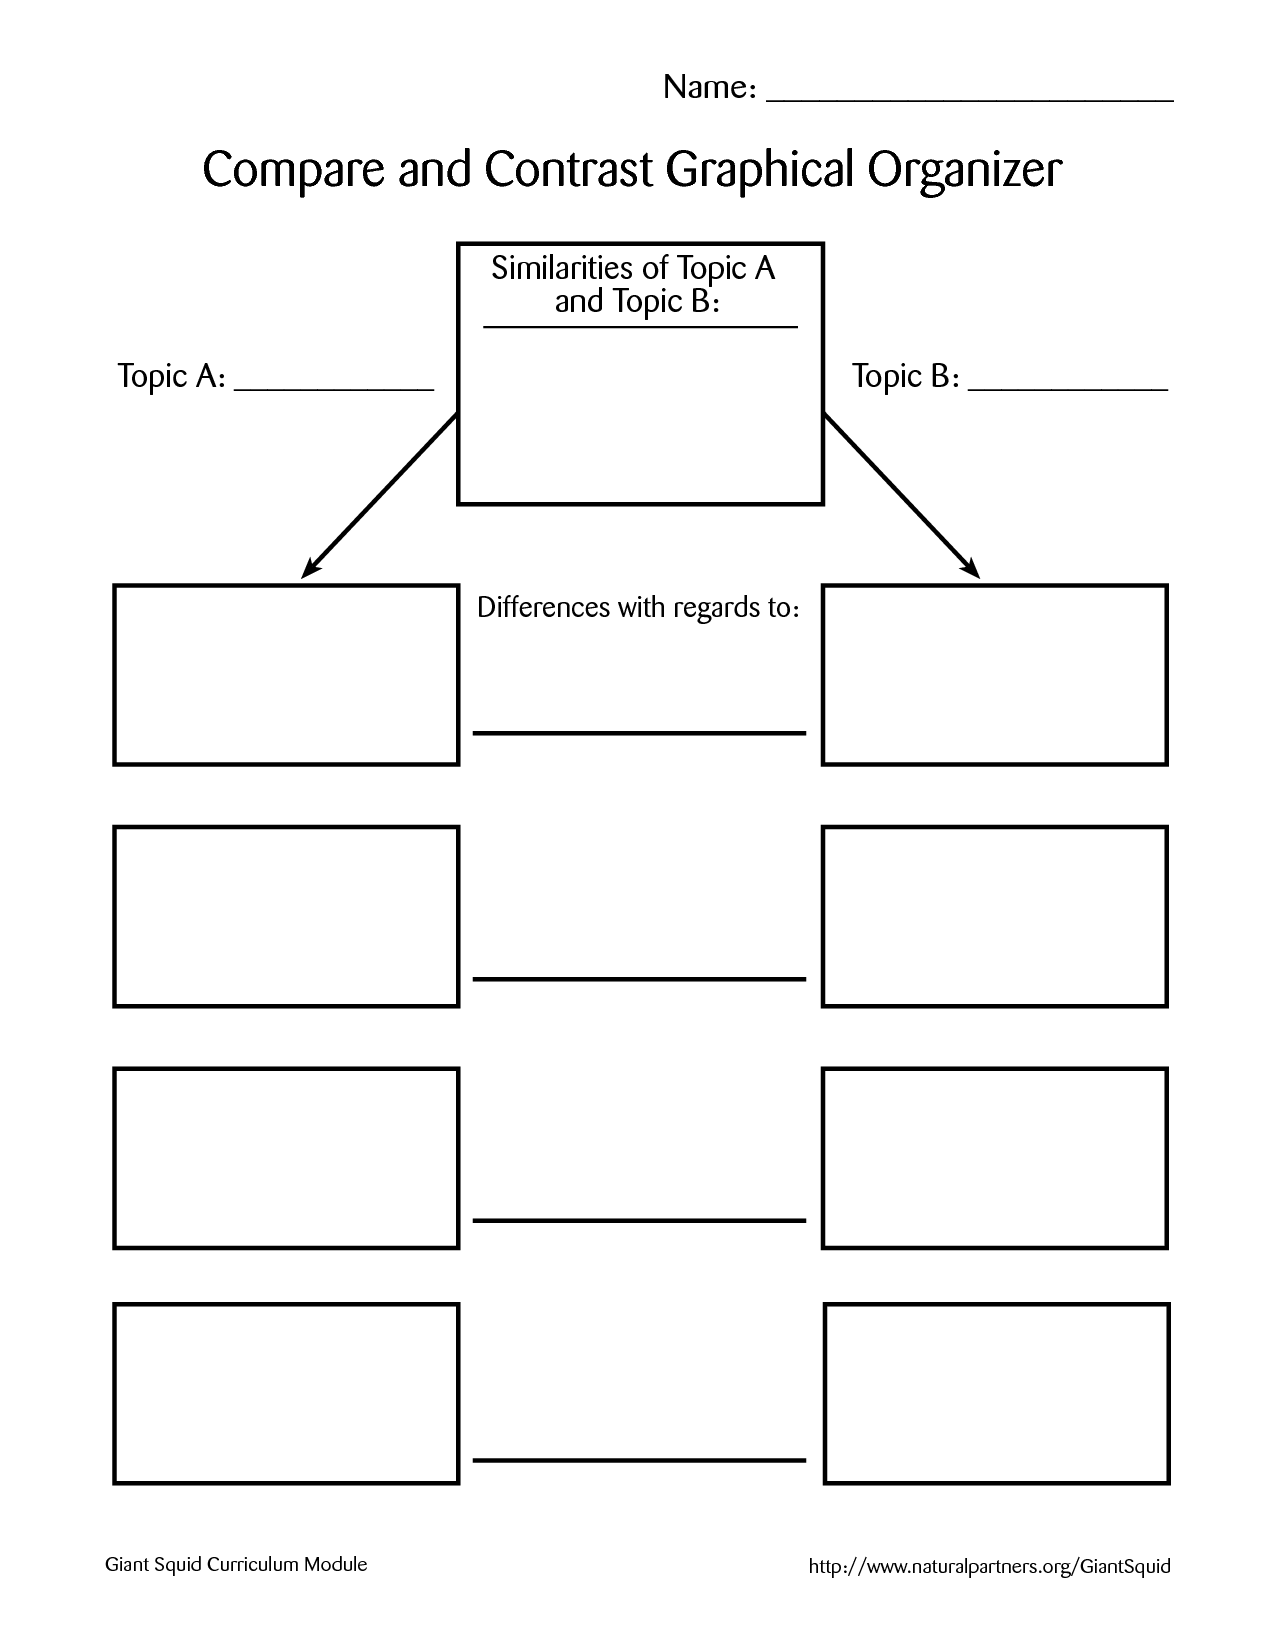 003 Compare And Contrast Essay Graphic Organizer Example Wondrous Middle School Full